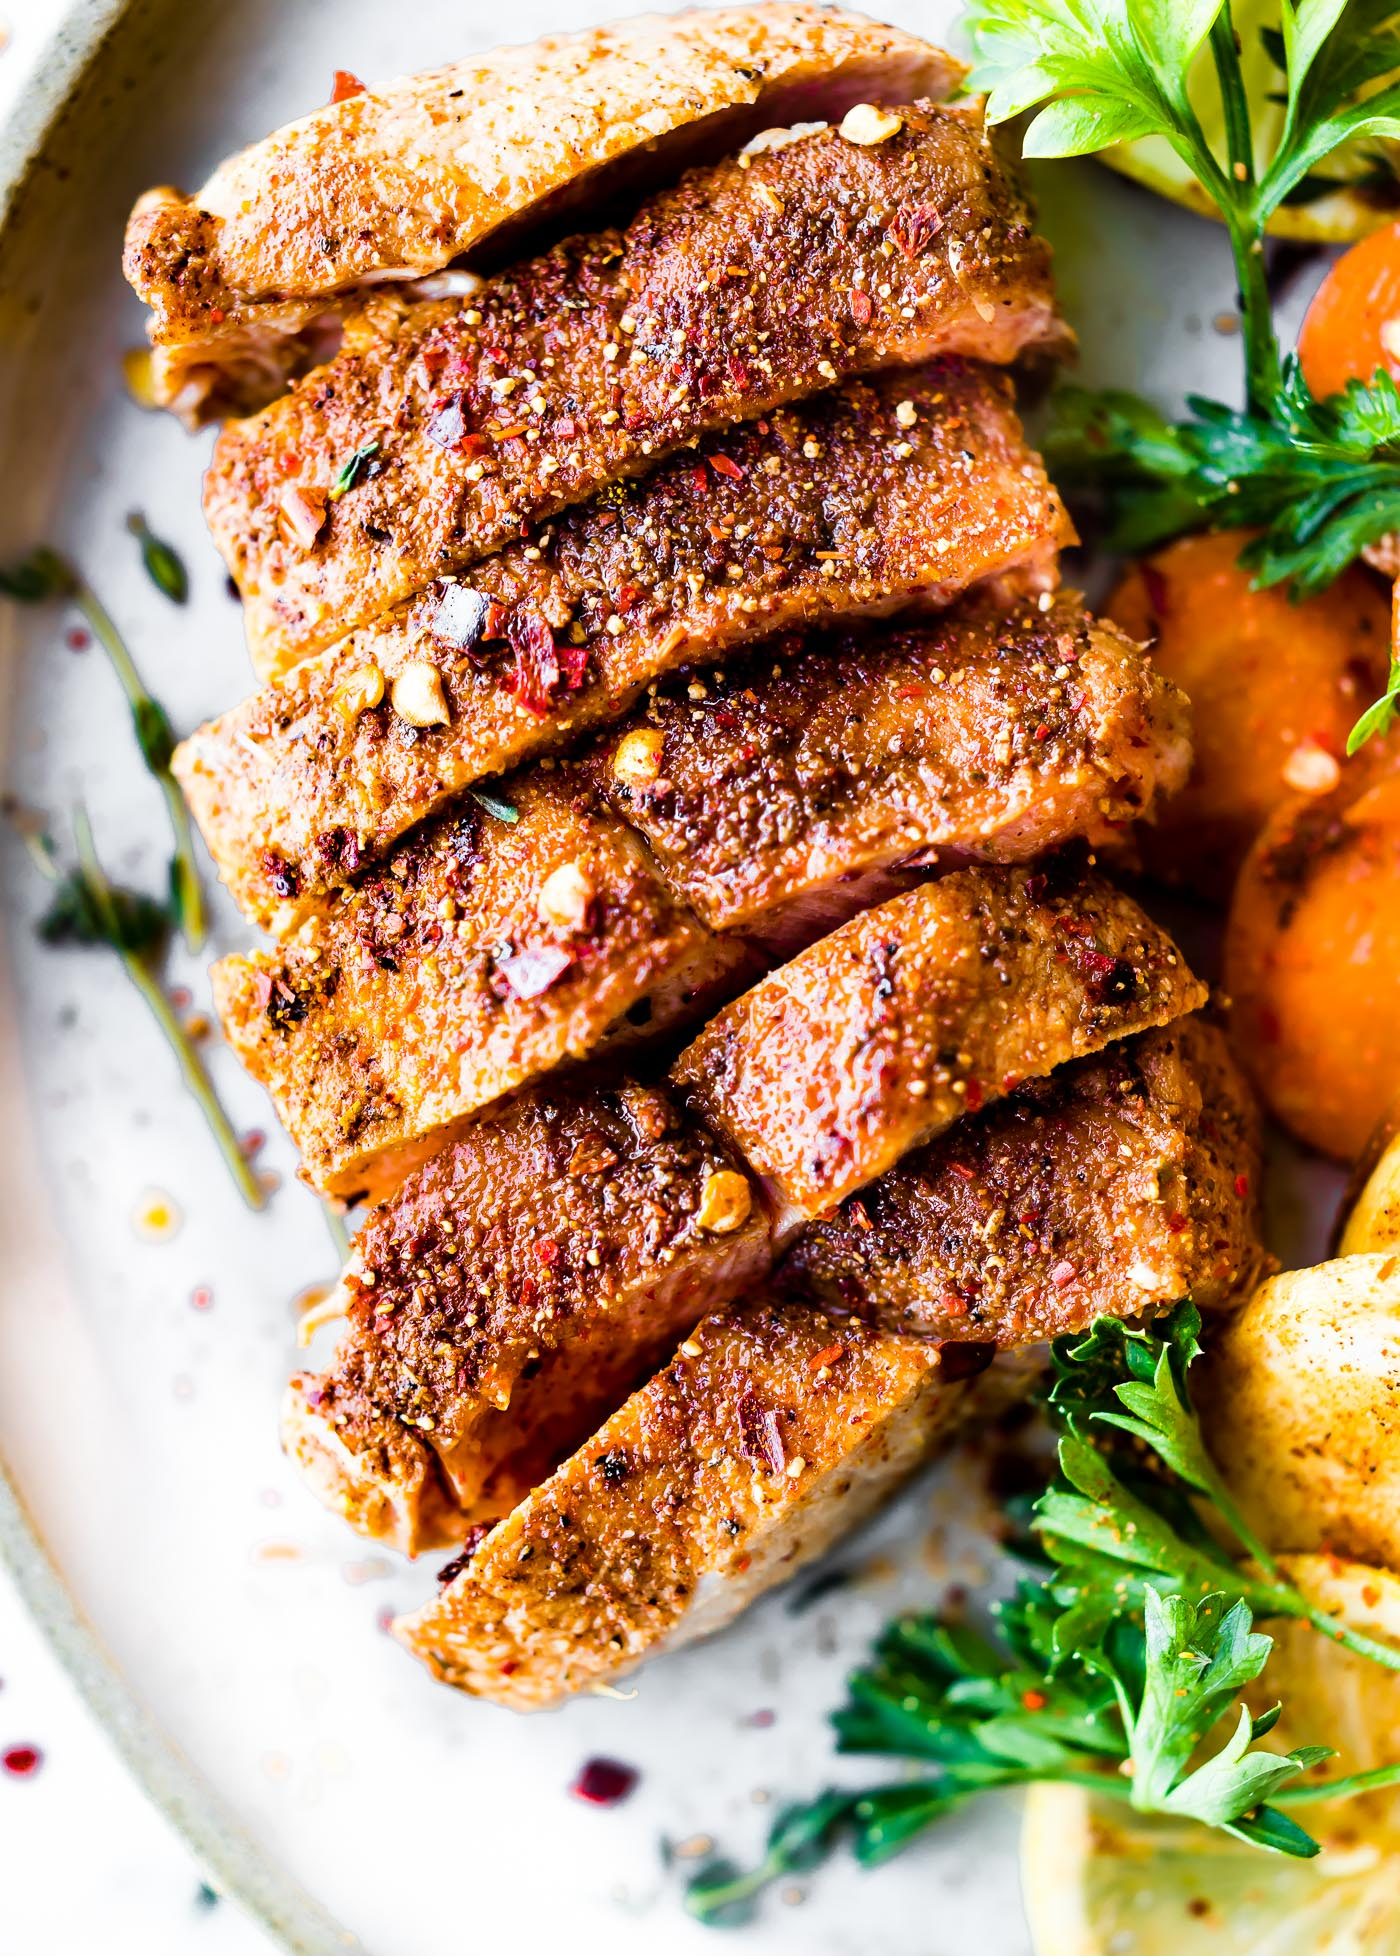 ThisCinnamon Chipotle Baked Pork Chops with parsnips and carrots makes an easy one pan meal. Boneless baked pork chops rubbed in a sweet smokey seasoning, roasted veggies, and herbs to garnish. A paleo meal ready in 30 minutes.